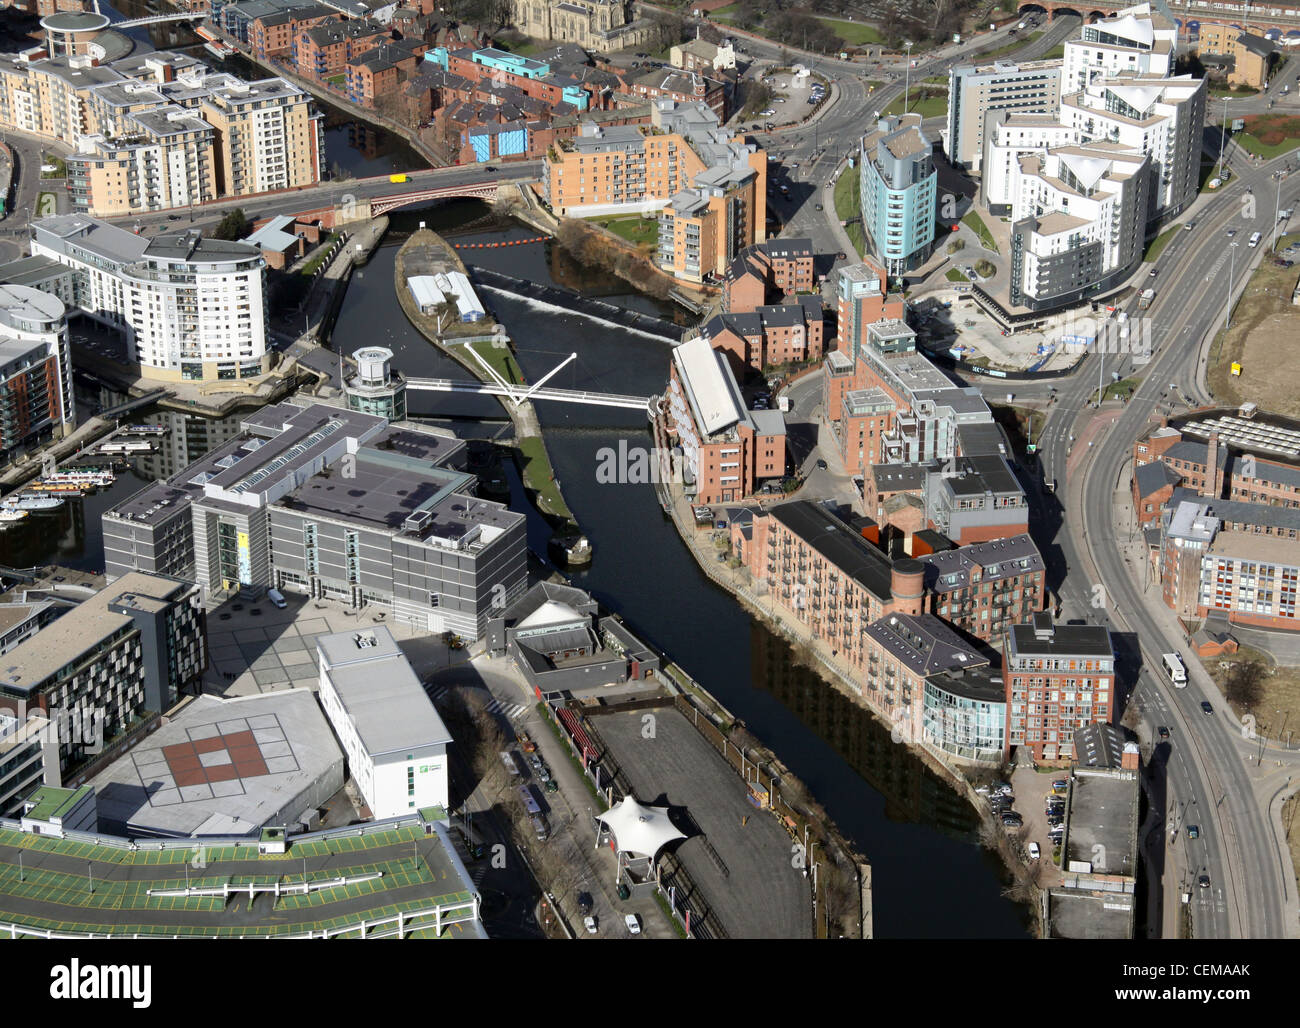 Aerial image of River Aire in Leeds City Centre - Stock Image